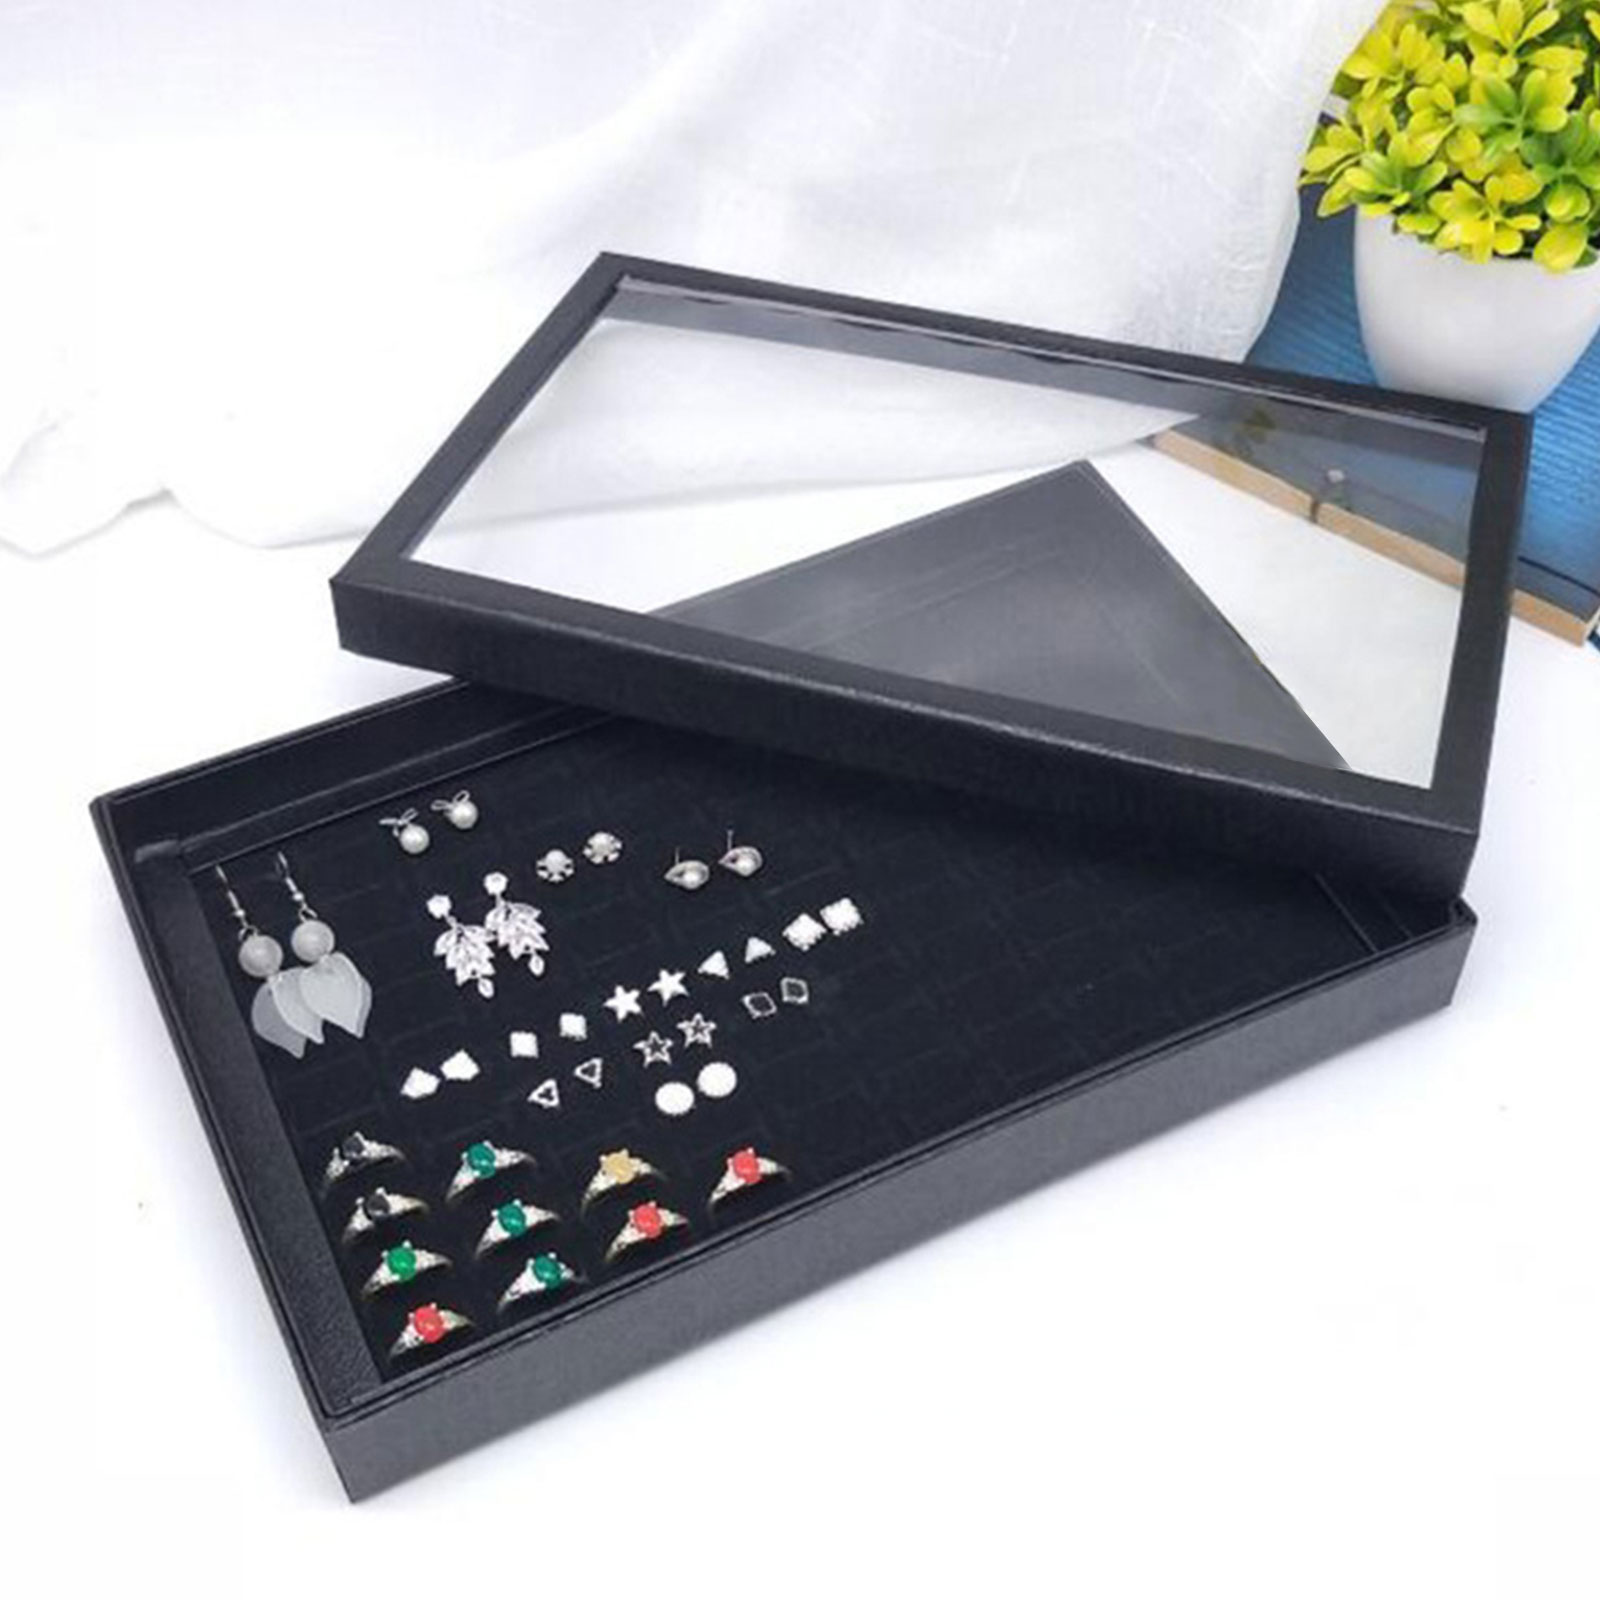 Fashion-Jewelry-Organizer-Box-Holder-Tray-Case-For-Ring-Earring-Storage-Display thumbnail 4